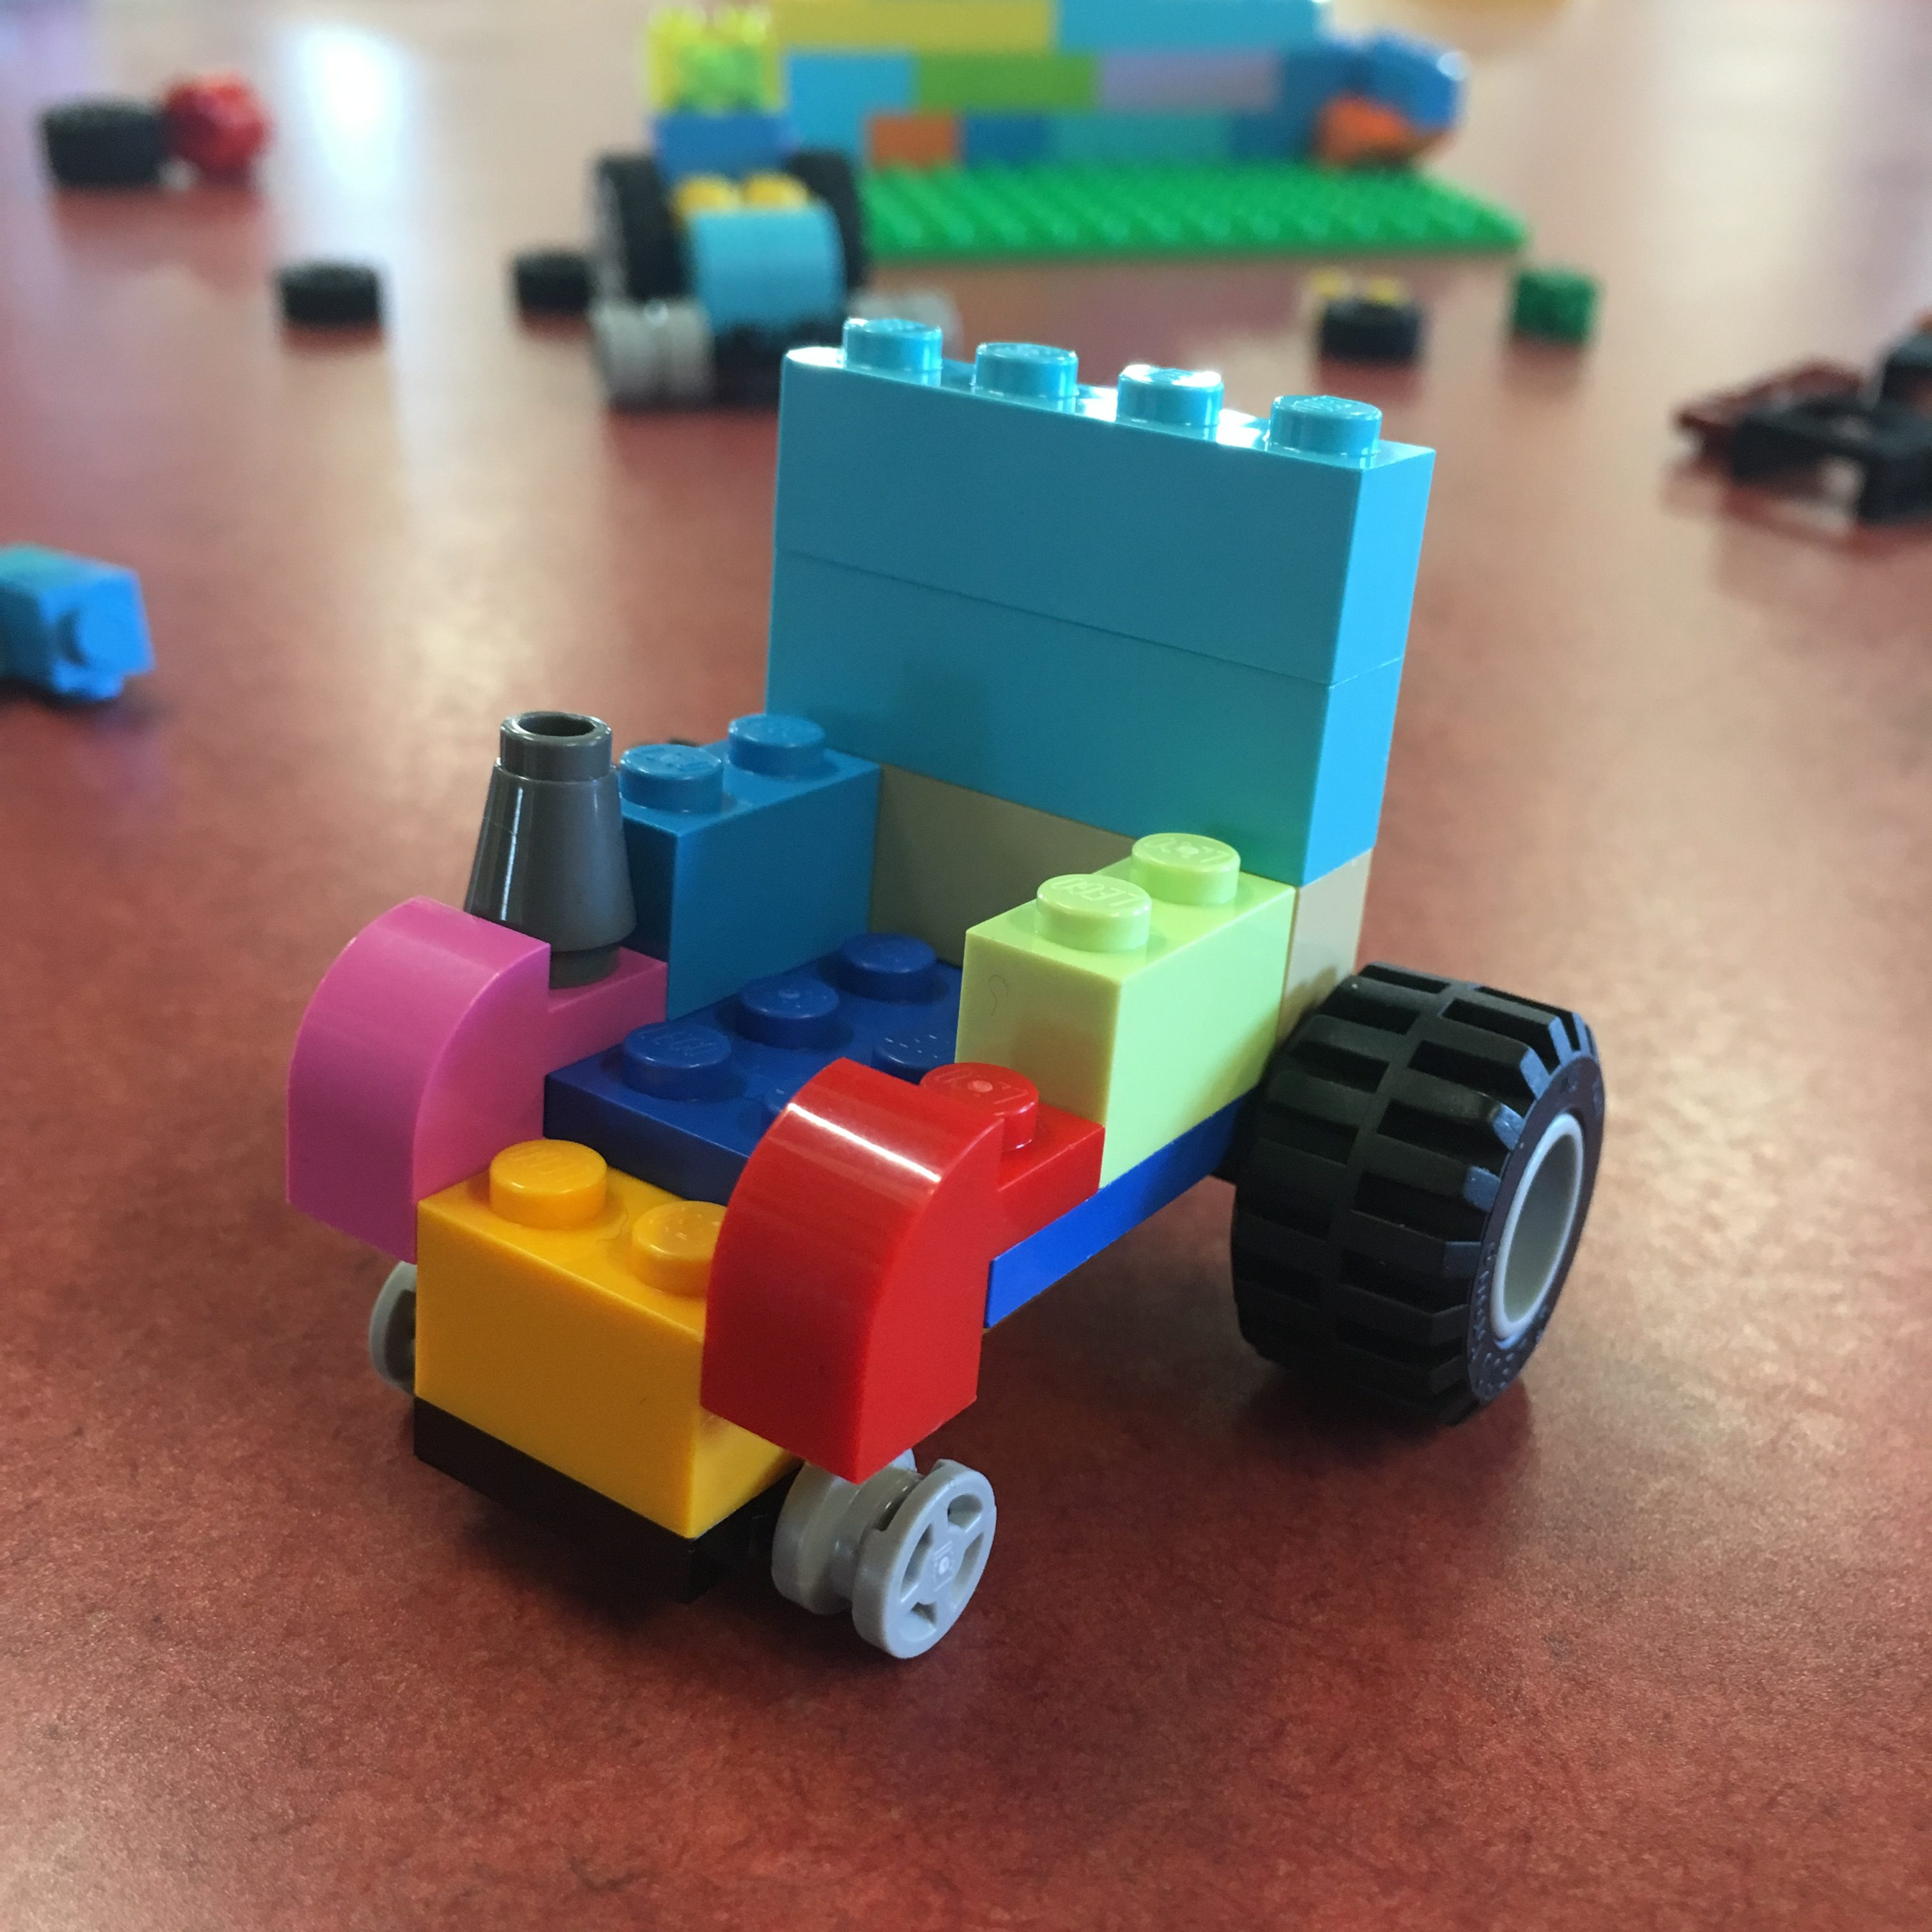 Photograph of Lego Wheelchair made by Touretteshero. It is made using colourful red, pink, green, teal, orange and blue blocks with big jumbo wheels and little castor wheels